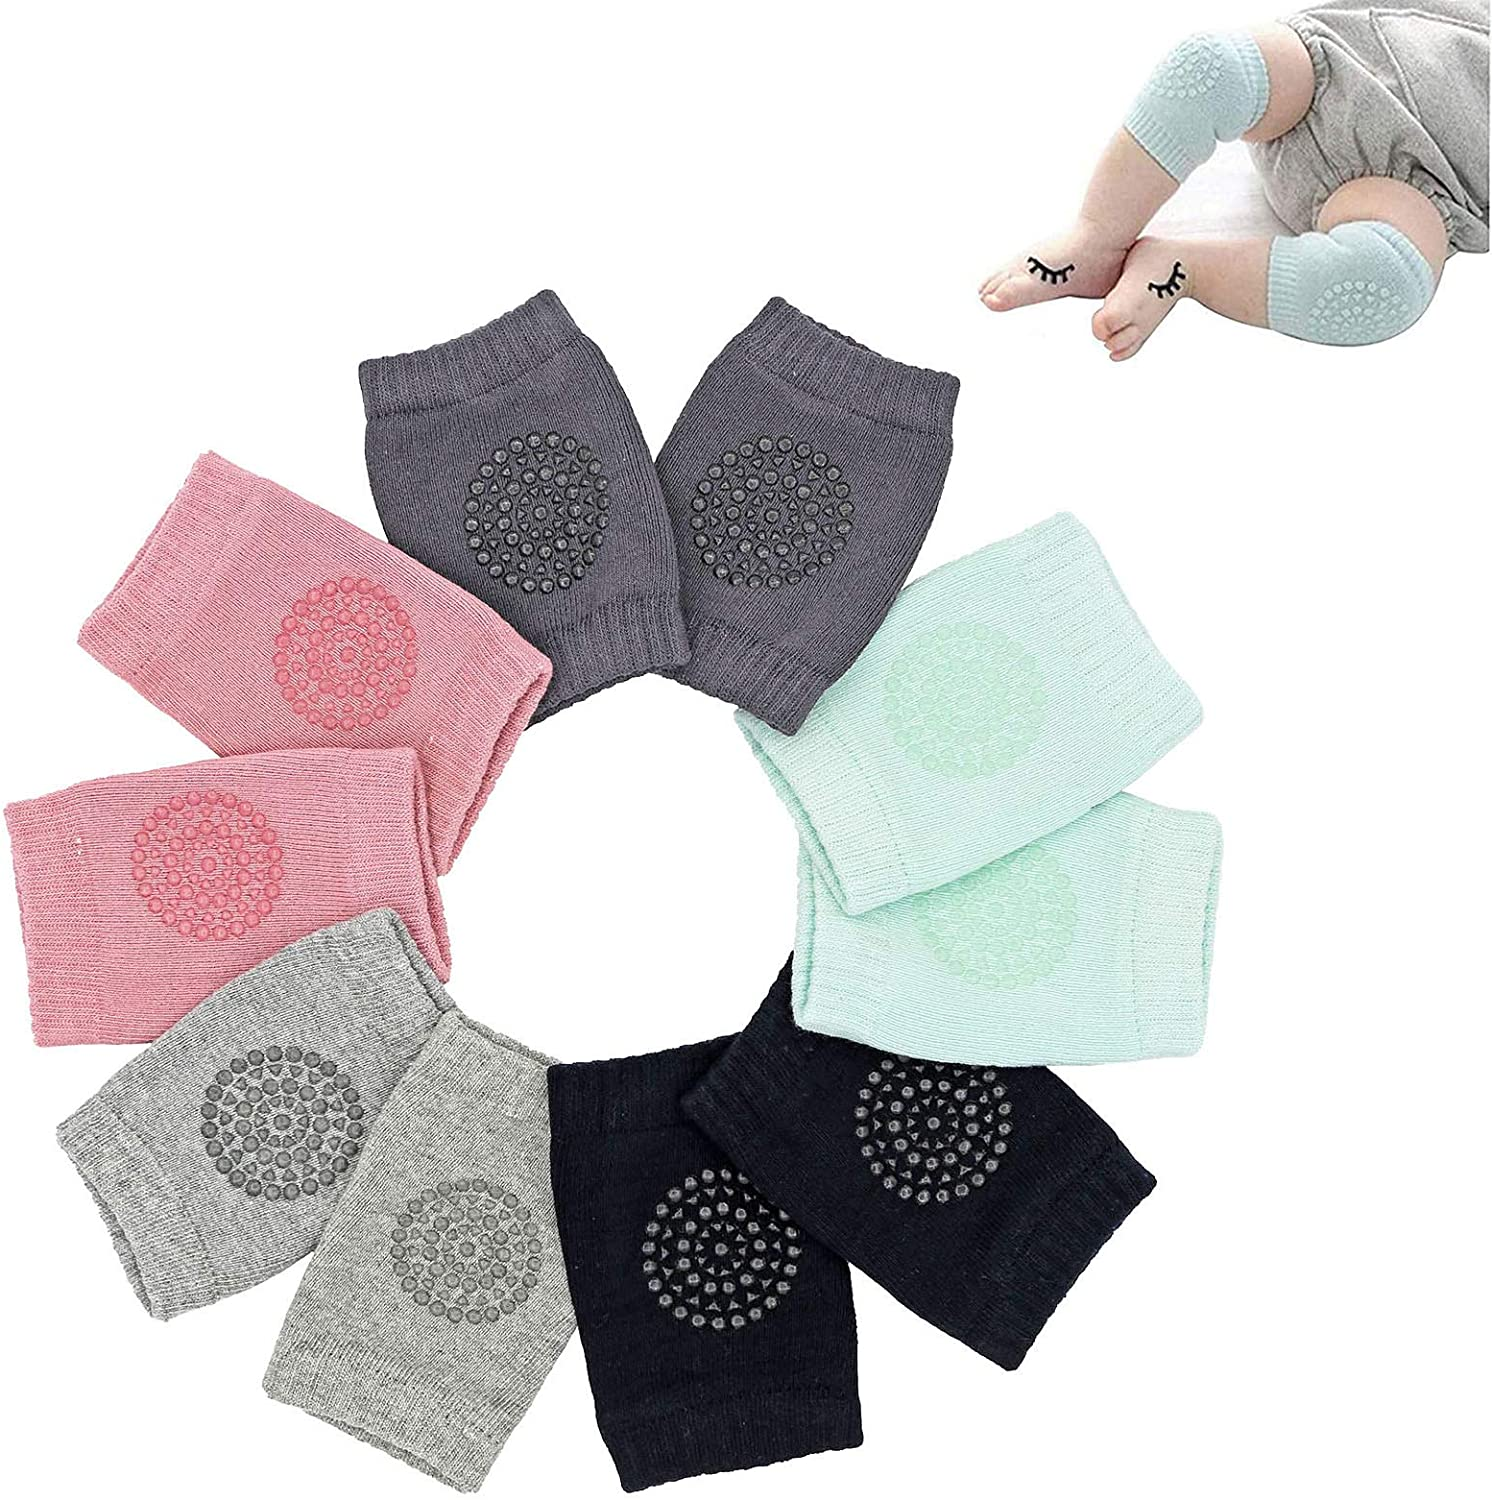 Baby Knee Pads - Crawling Knee Pads for Baby Infant Toddler by Hidetex (5 Pairs)